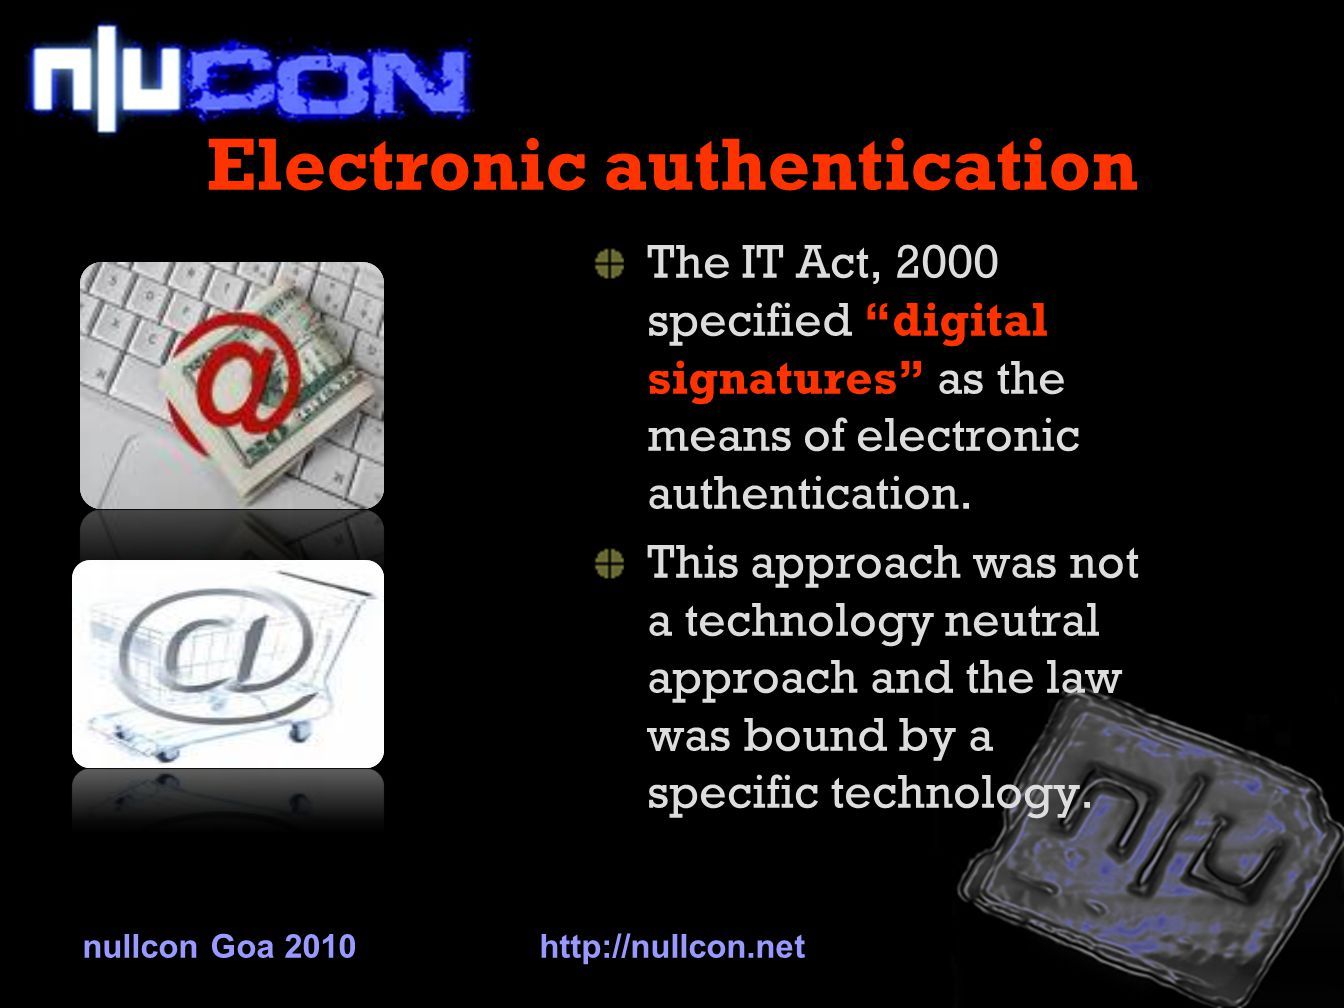 Electronic authentication The IT Act, 2000 specified digital signatures as the means of electronic authentication.